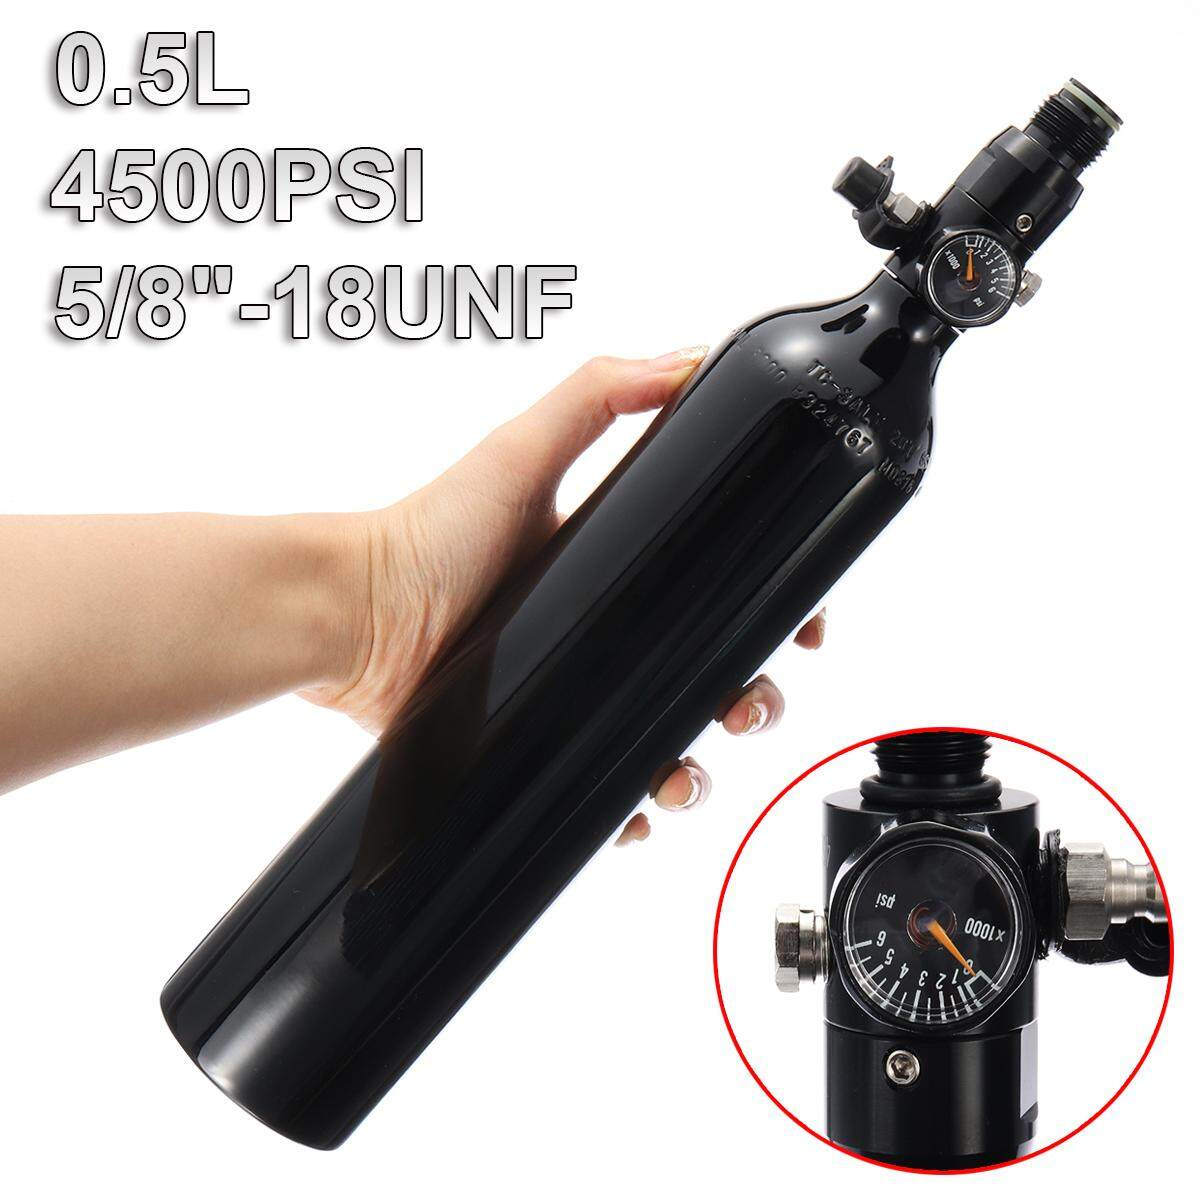 0.5 Liter Aluminum Tank Air Bottle With 4500 PSI Regulator For Paintball PCP Black - intl